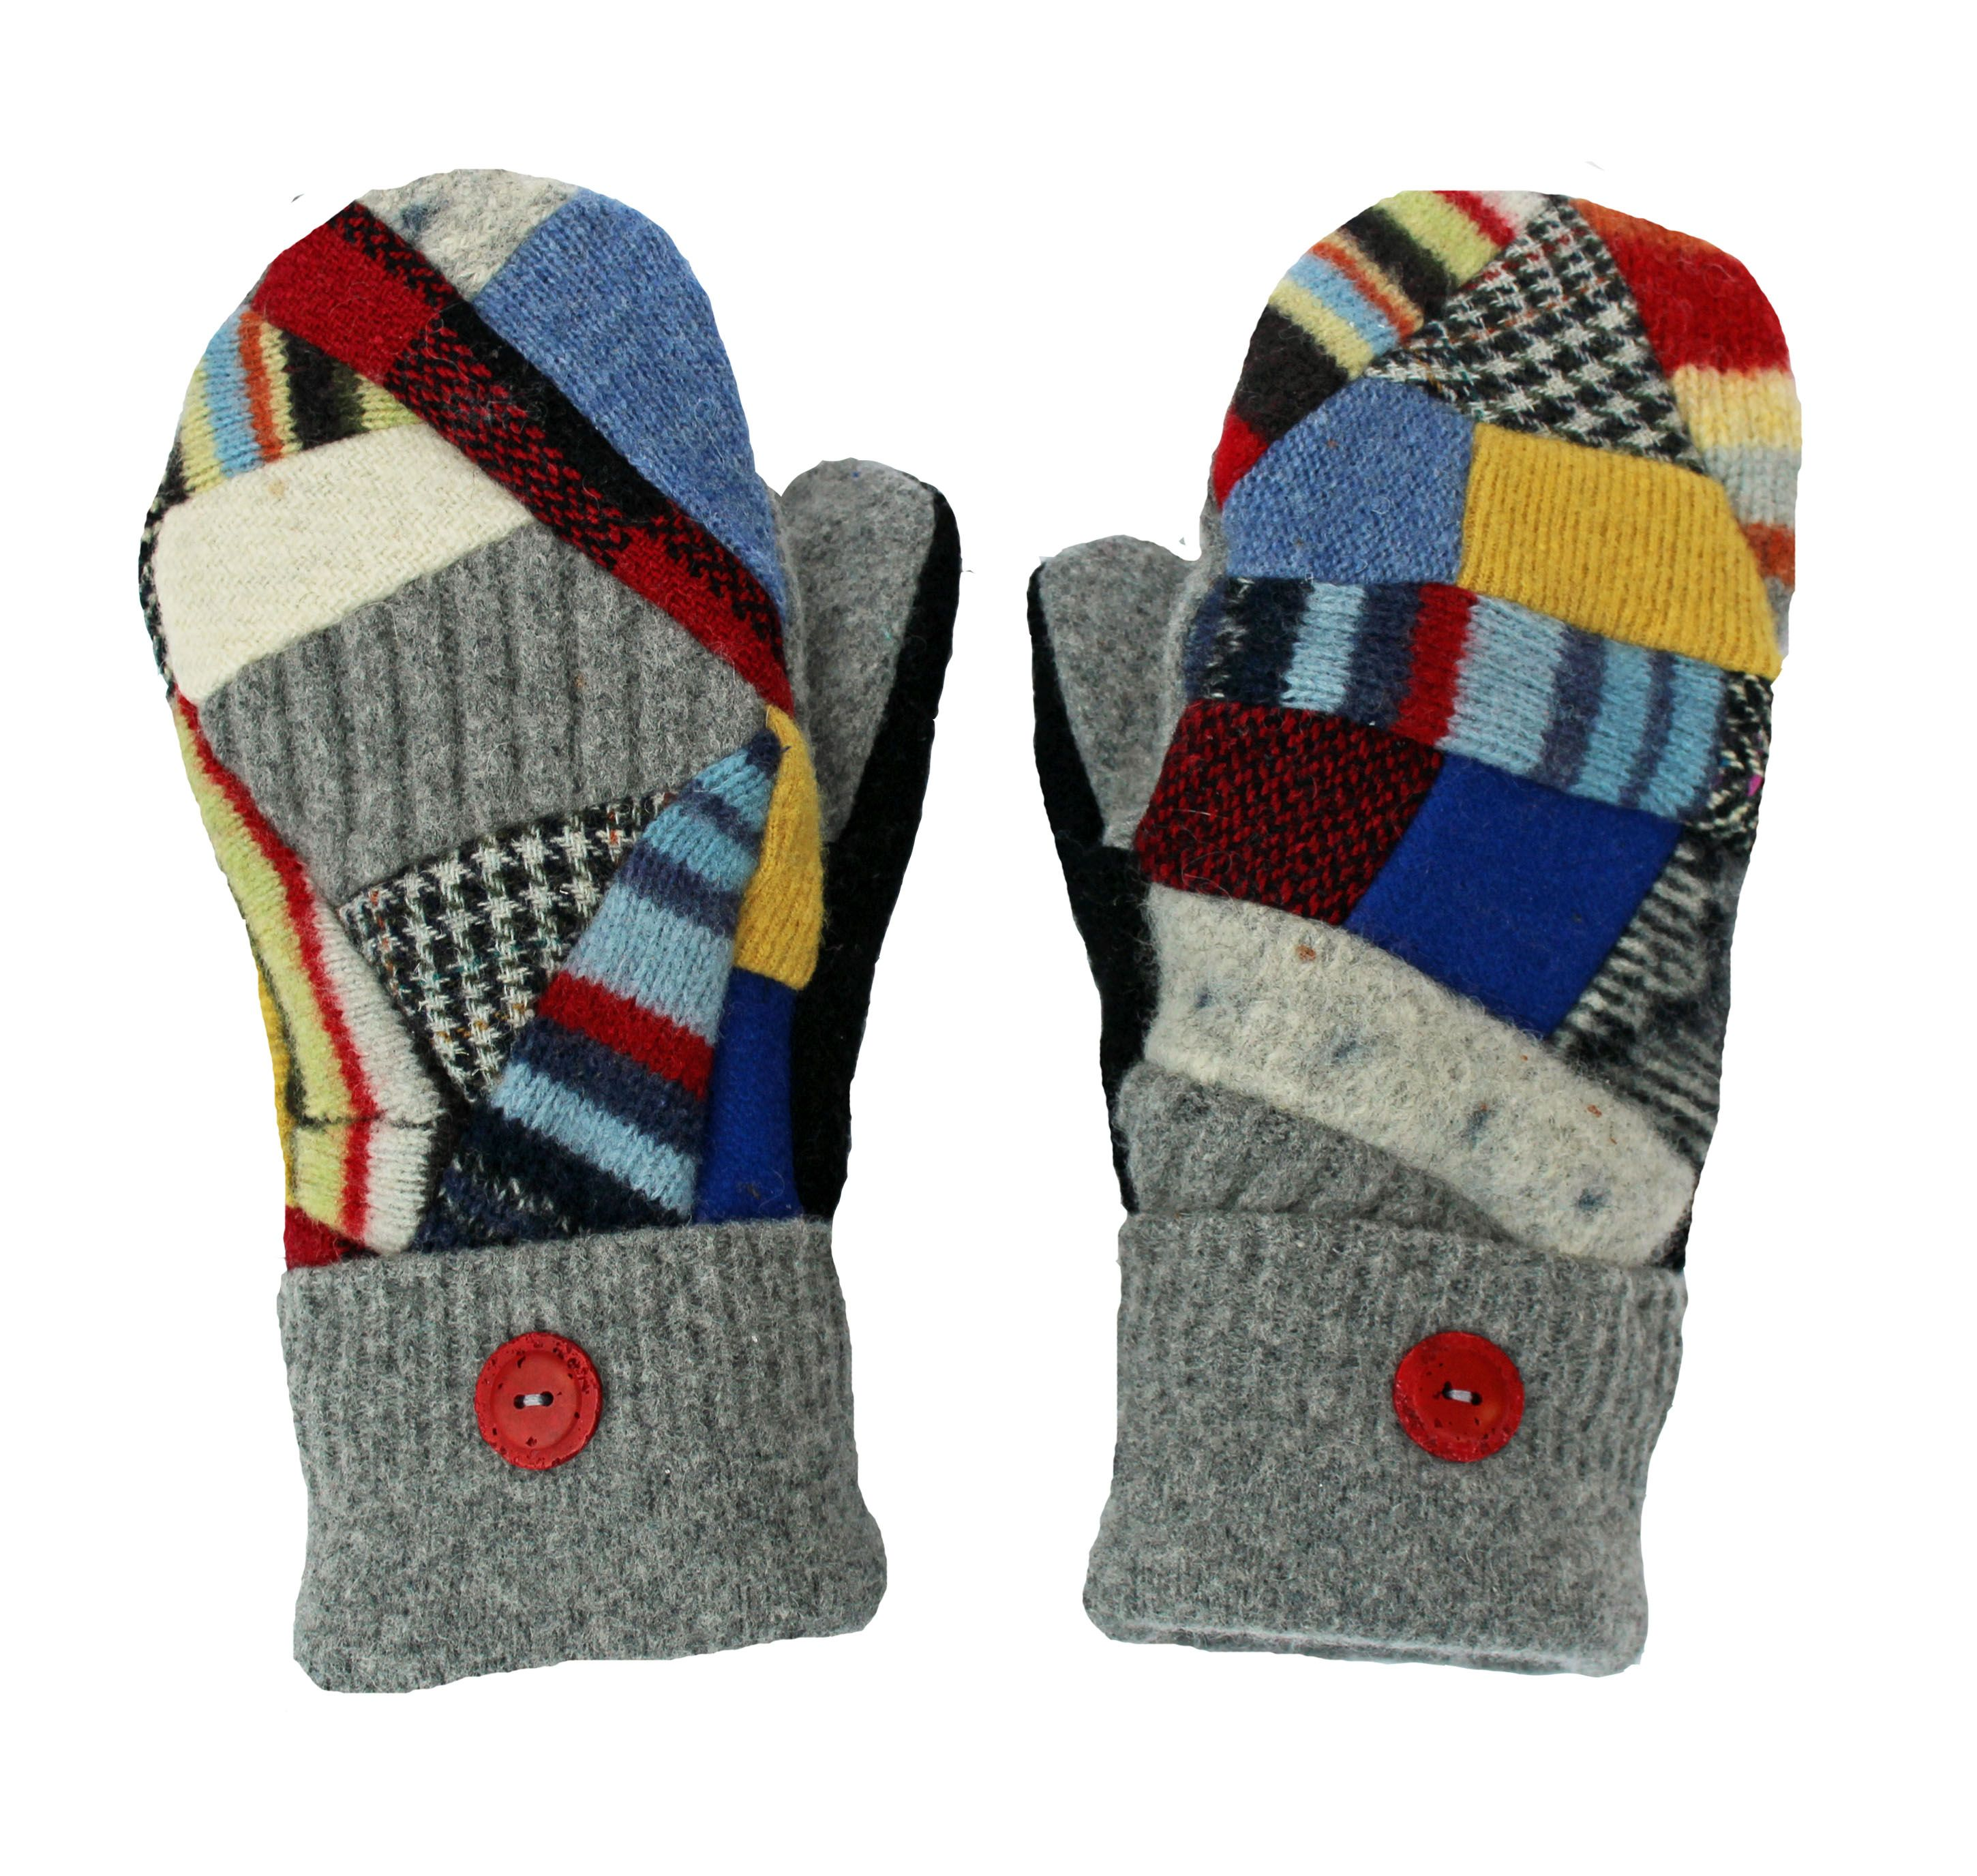 Sweaty Mitts Wool Patchwork Mittens Recycled Sweater Mitts Red